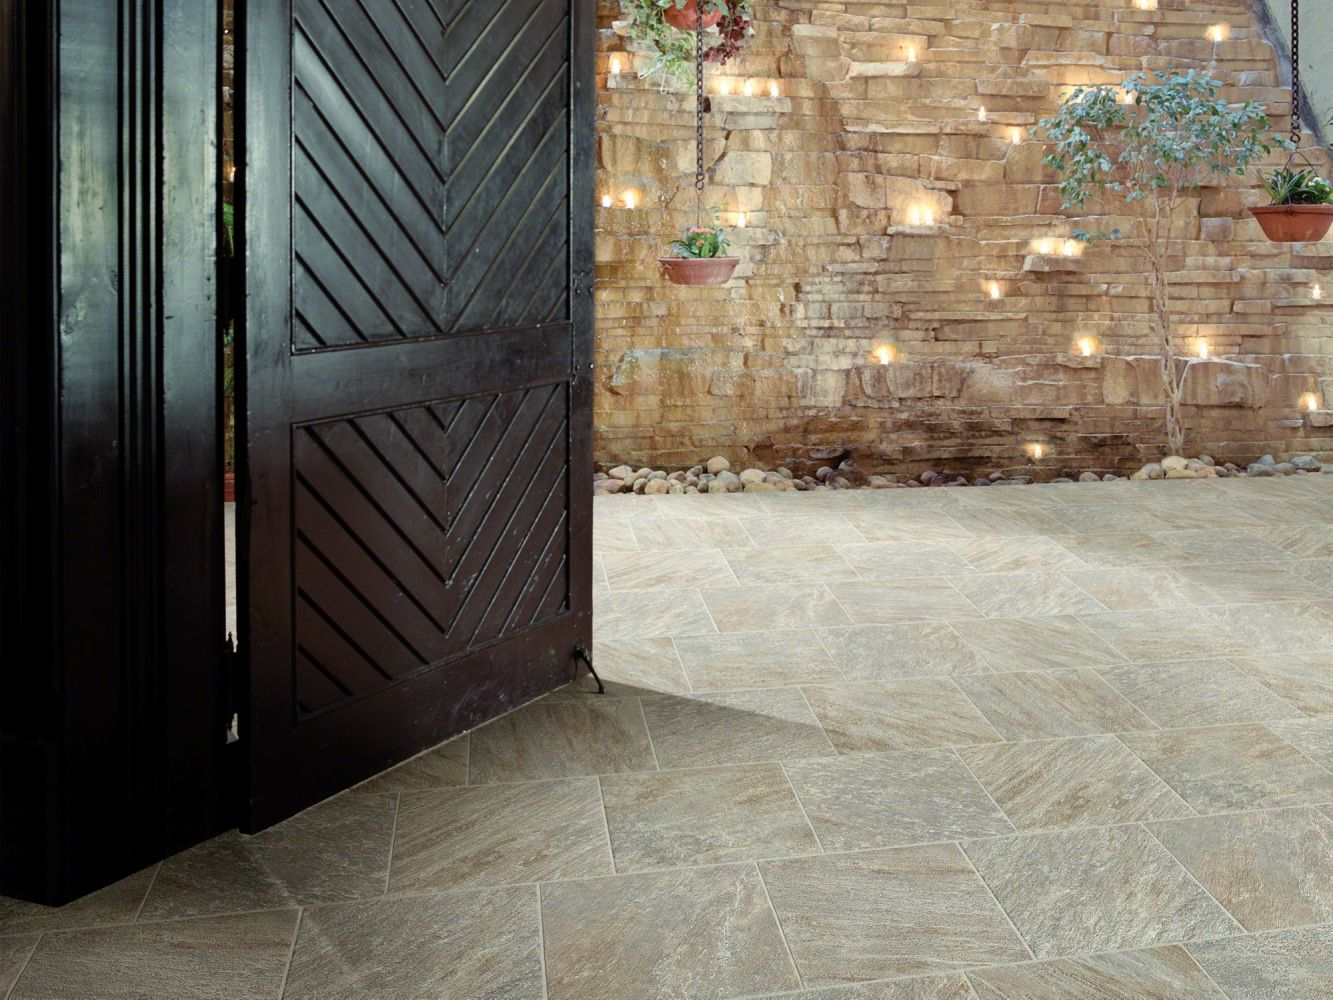 Shaw Floors 5th And Main City Lights Cobble Stone 00553_5M101